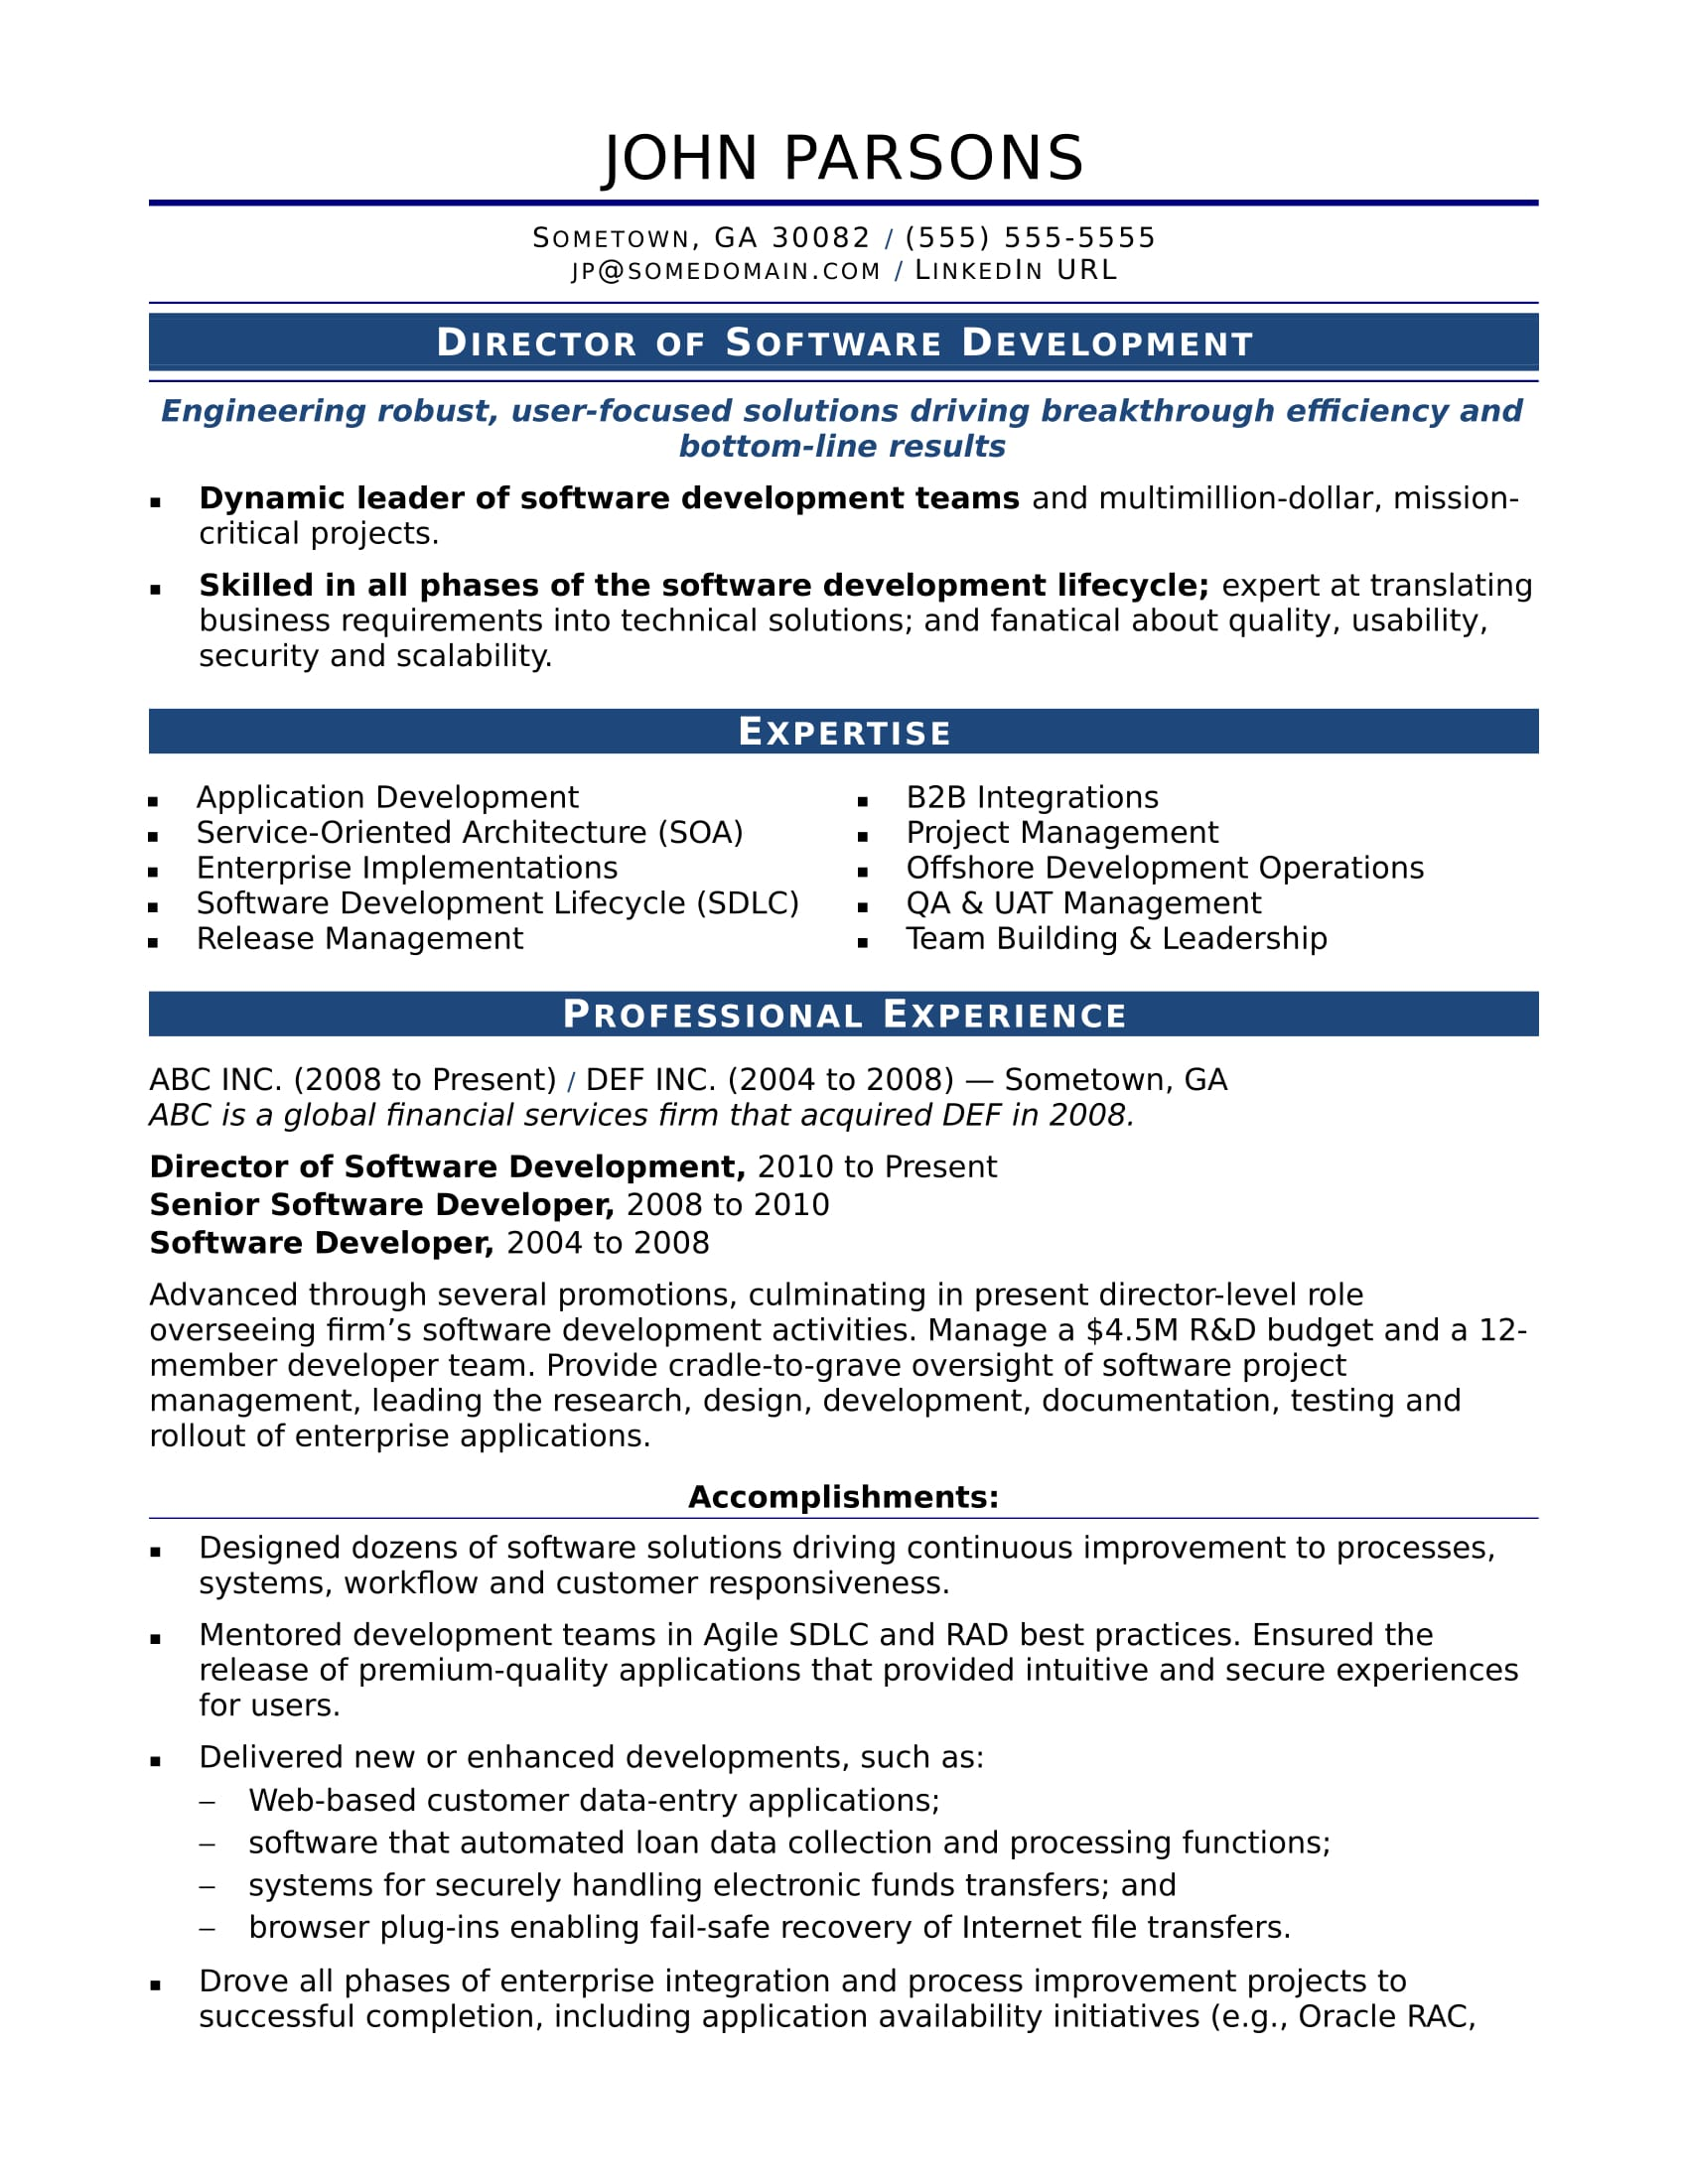 sample resume for an experienced it developer - Developer Resume Template